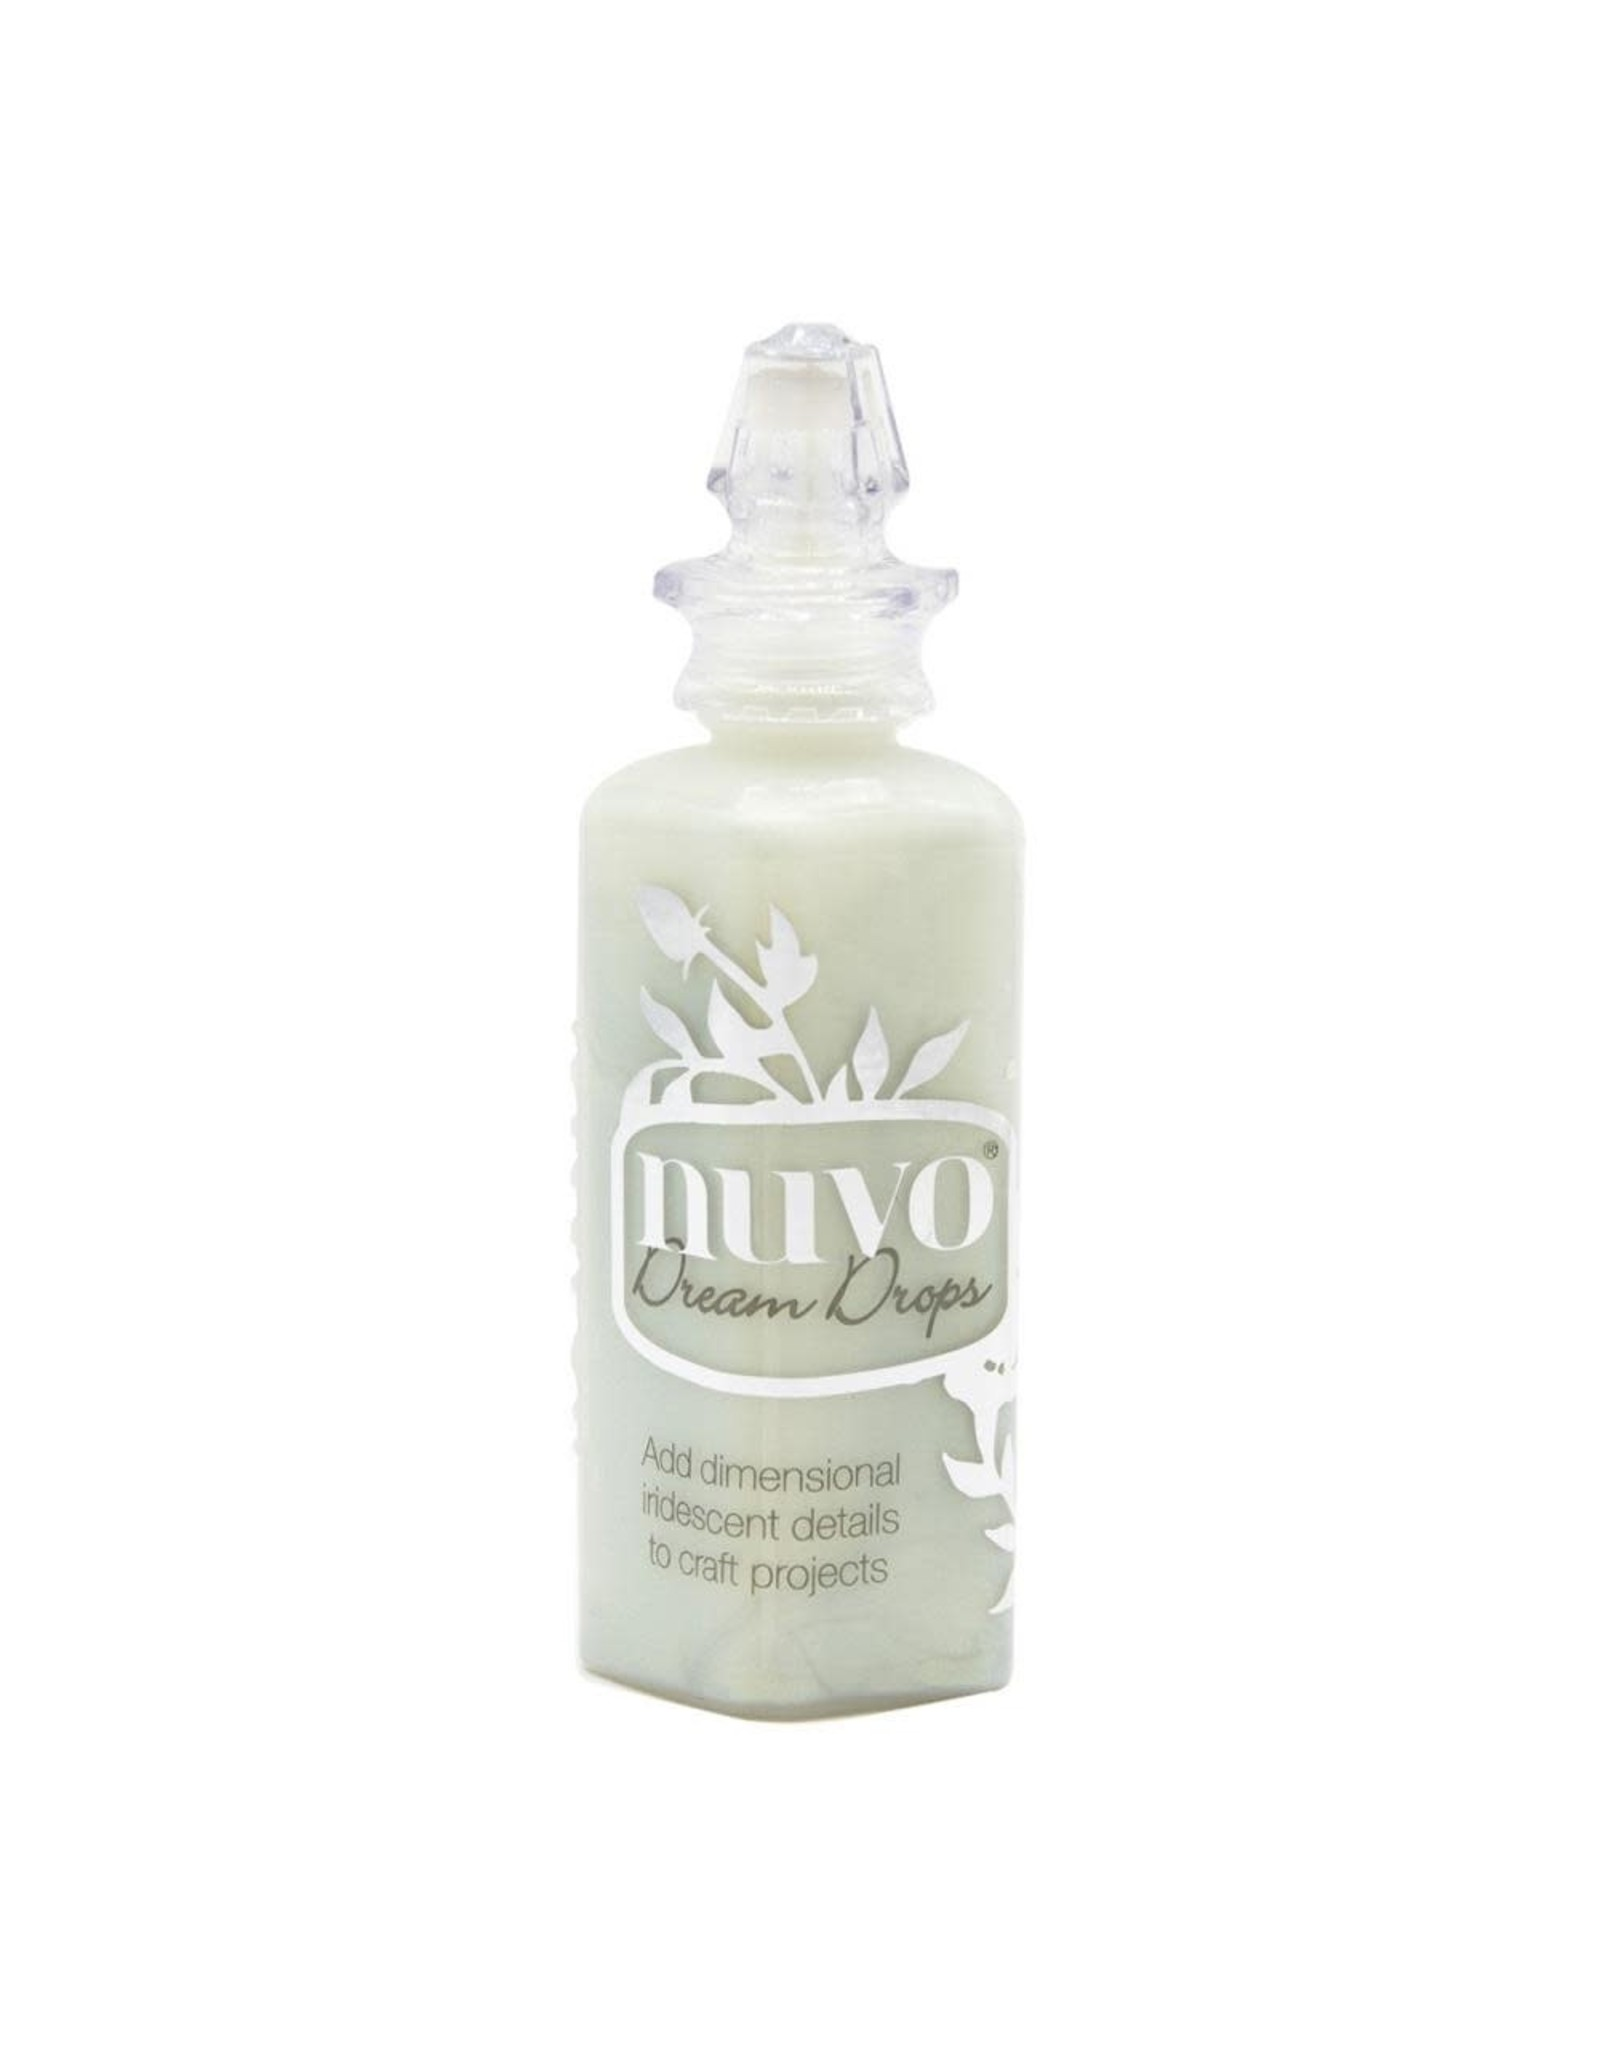 Tonic Studio Nuvo Dream Drops - Enchanted